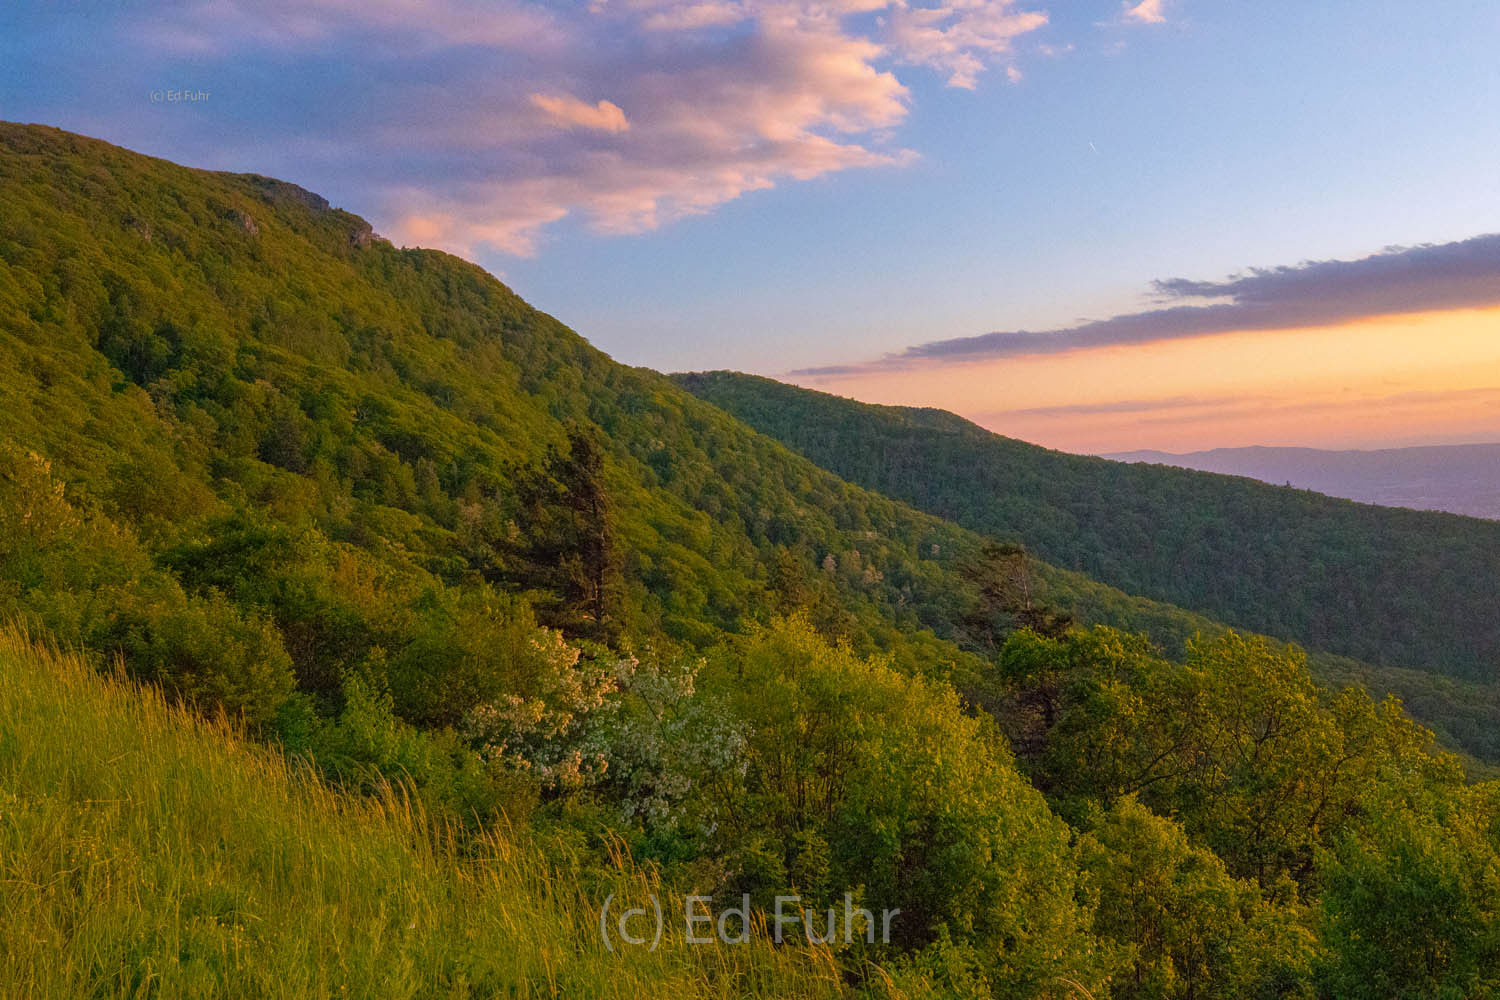 Shenandoah national park, spring, photograph, image, stony man mountain, photo